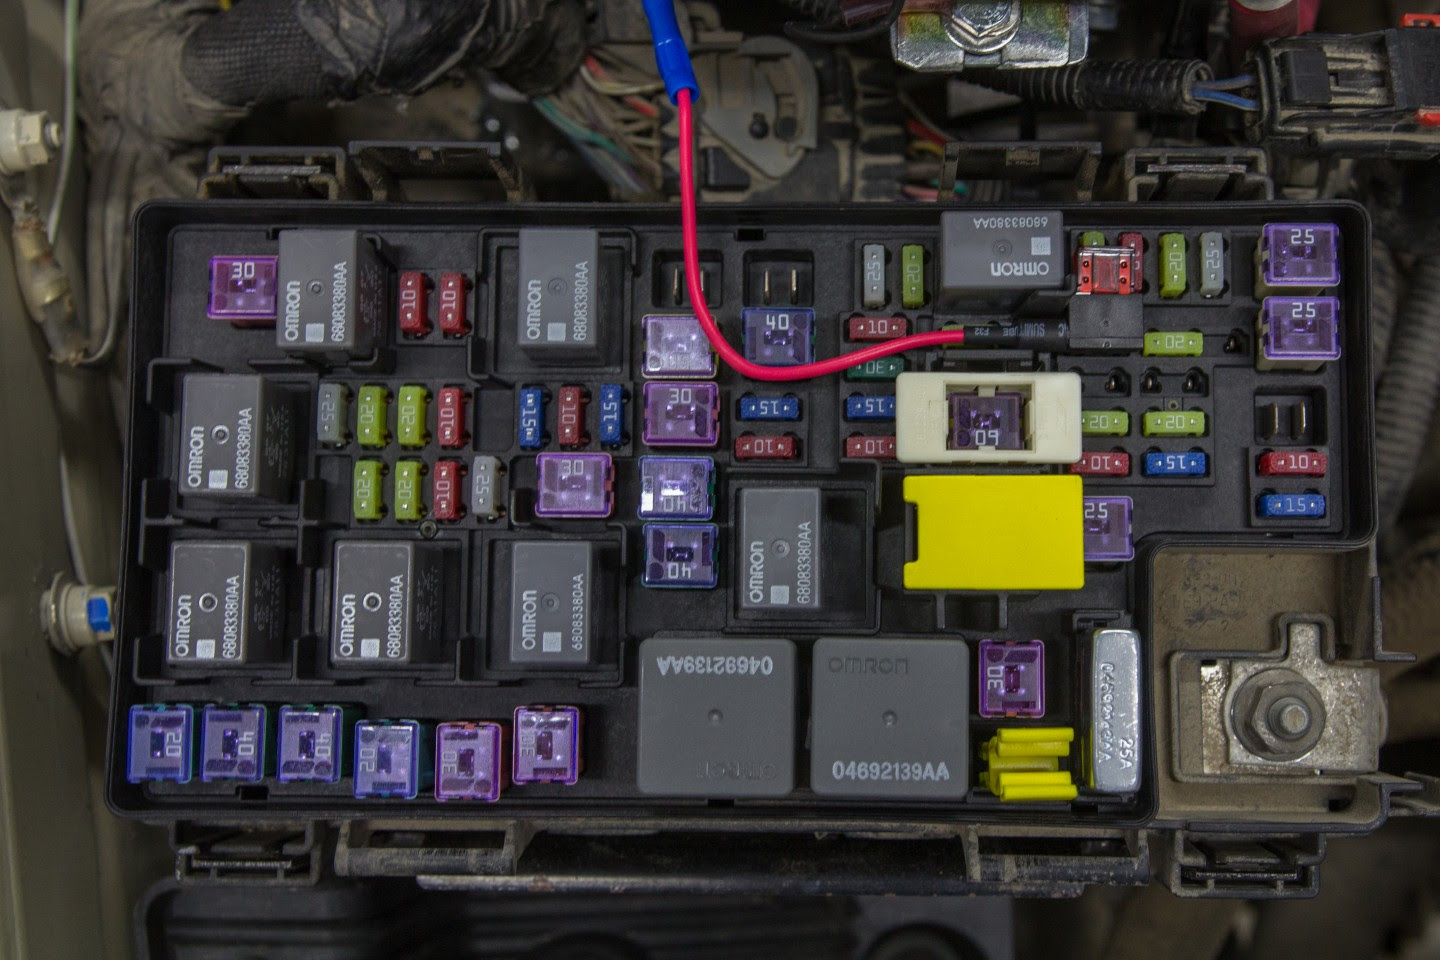 2012 Wrangler Fuse Box Location Wiring Diagram System Blame Dignal Blame Dignal Ediliadesign It